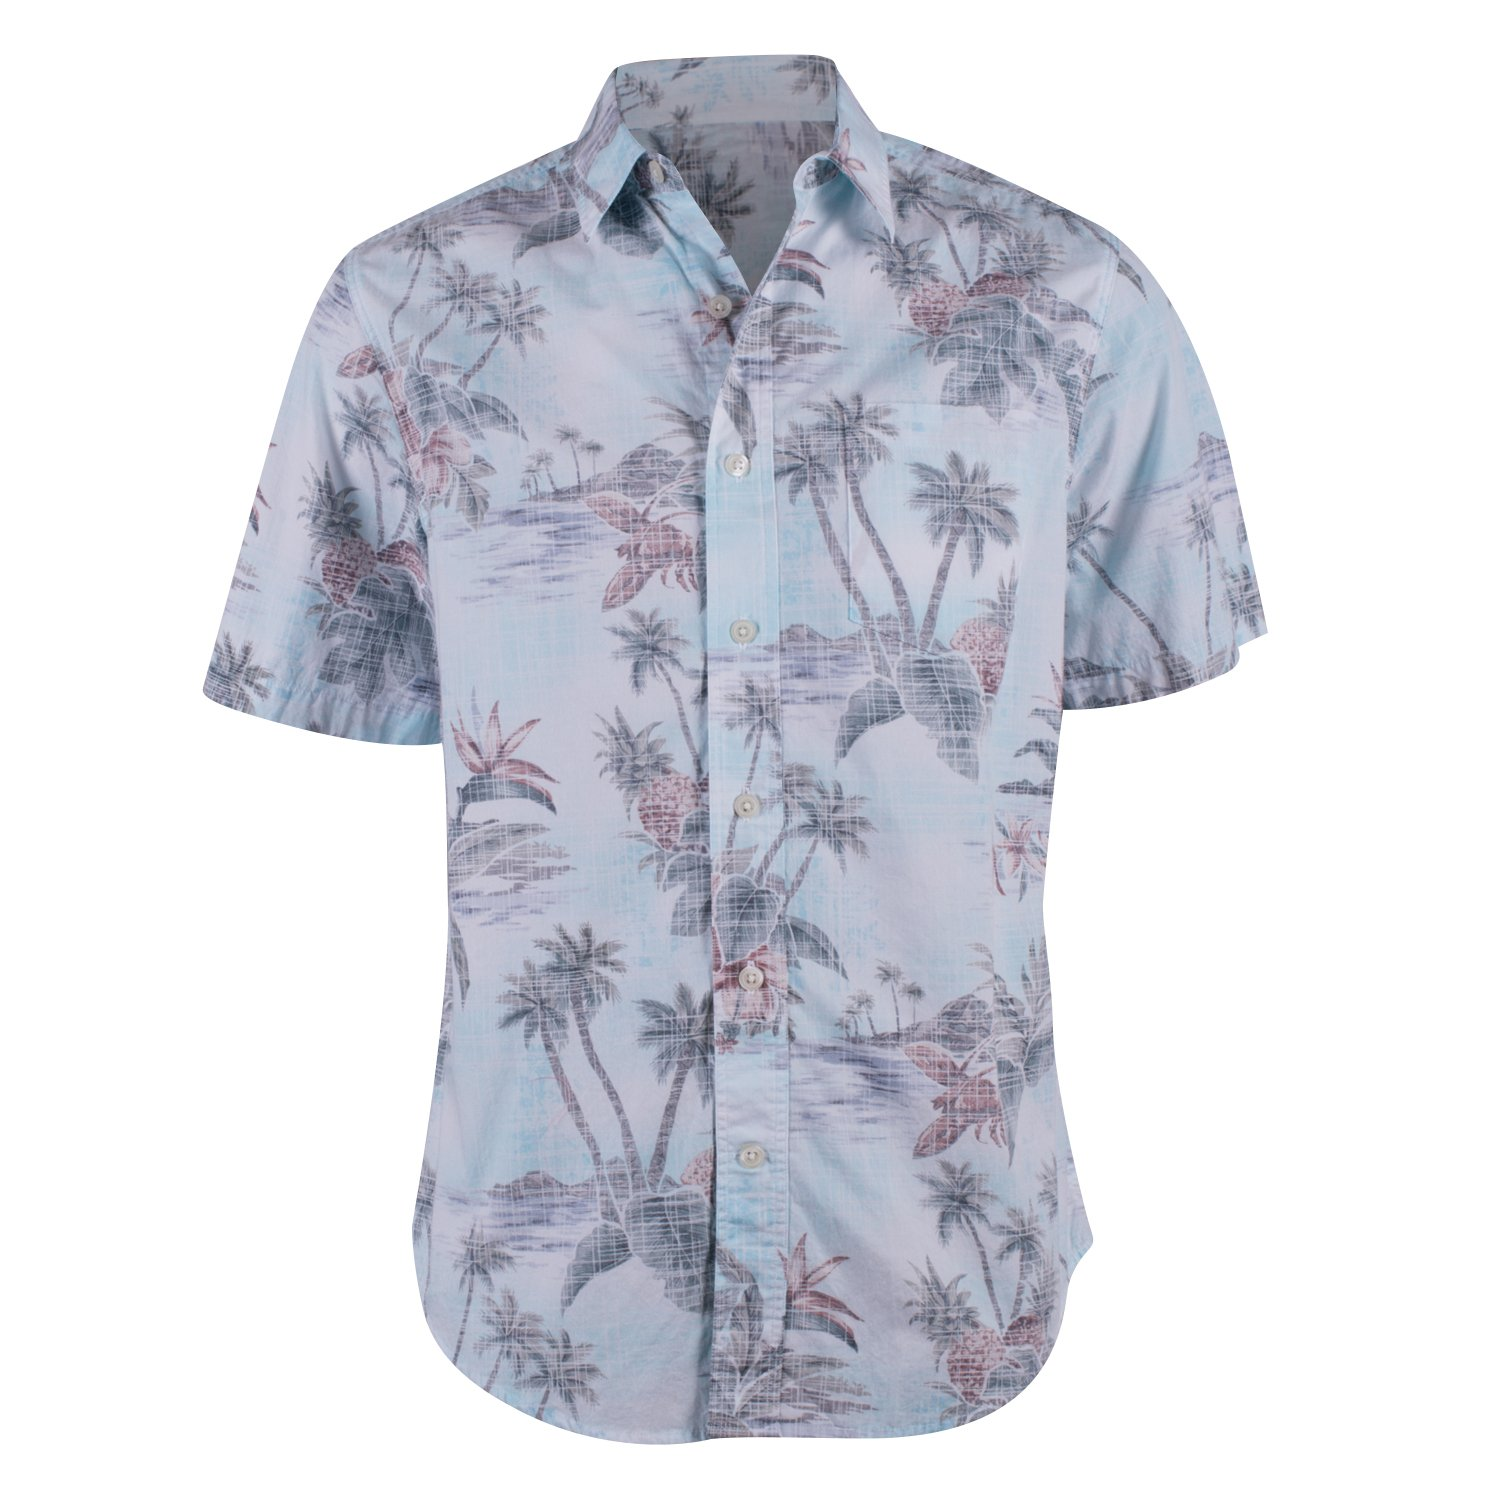 1897db03 Enzyme Washed Cotton Modern Fit Short Sleeve Shirt Imported Campia Moda  Mens Washed Cotton Modern Fit Print Shirt (Aqua Palm Tree Print, S)